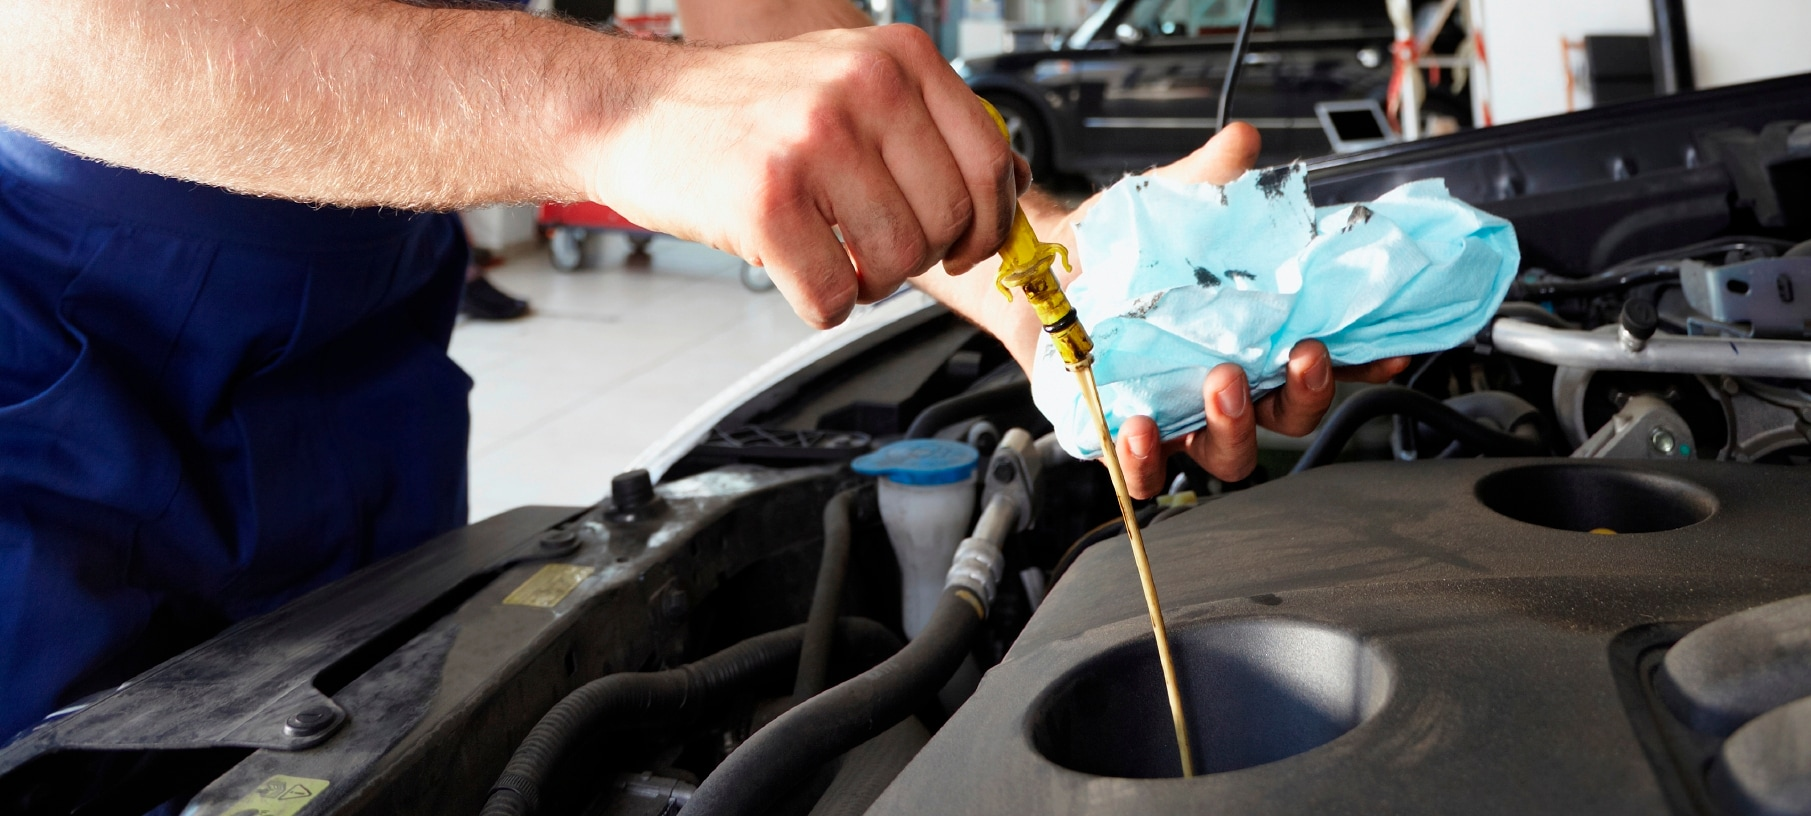 Topping Off Your Car Fluids